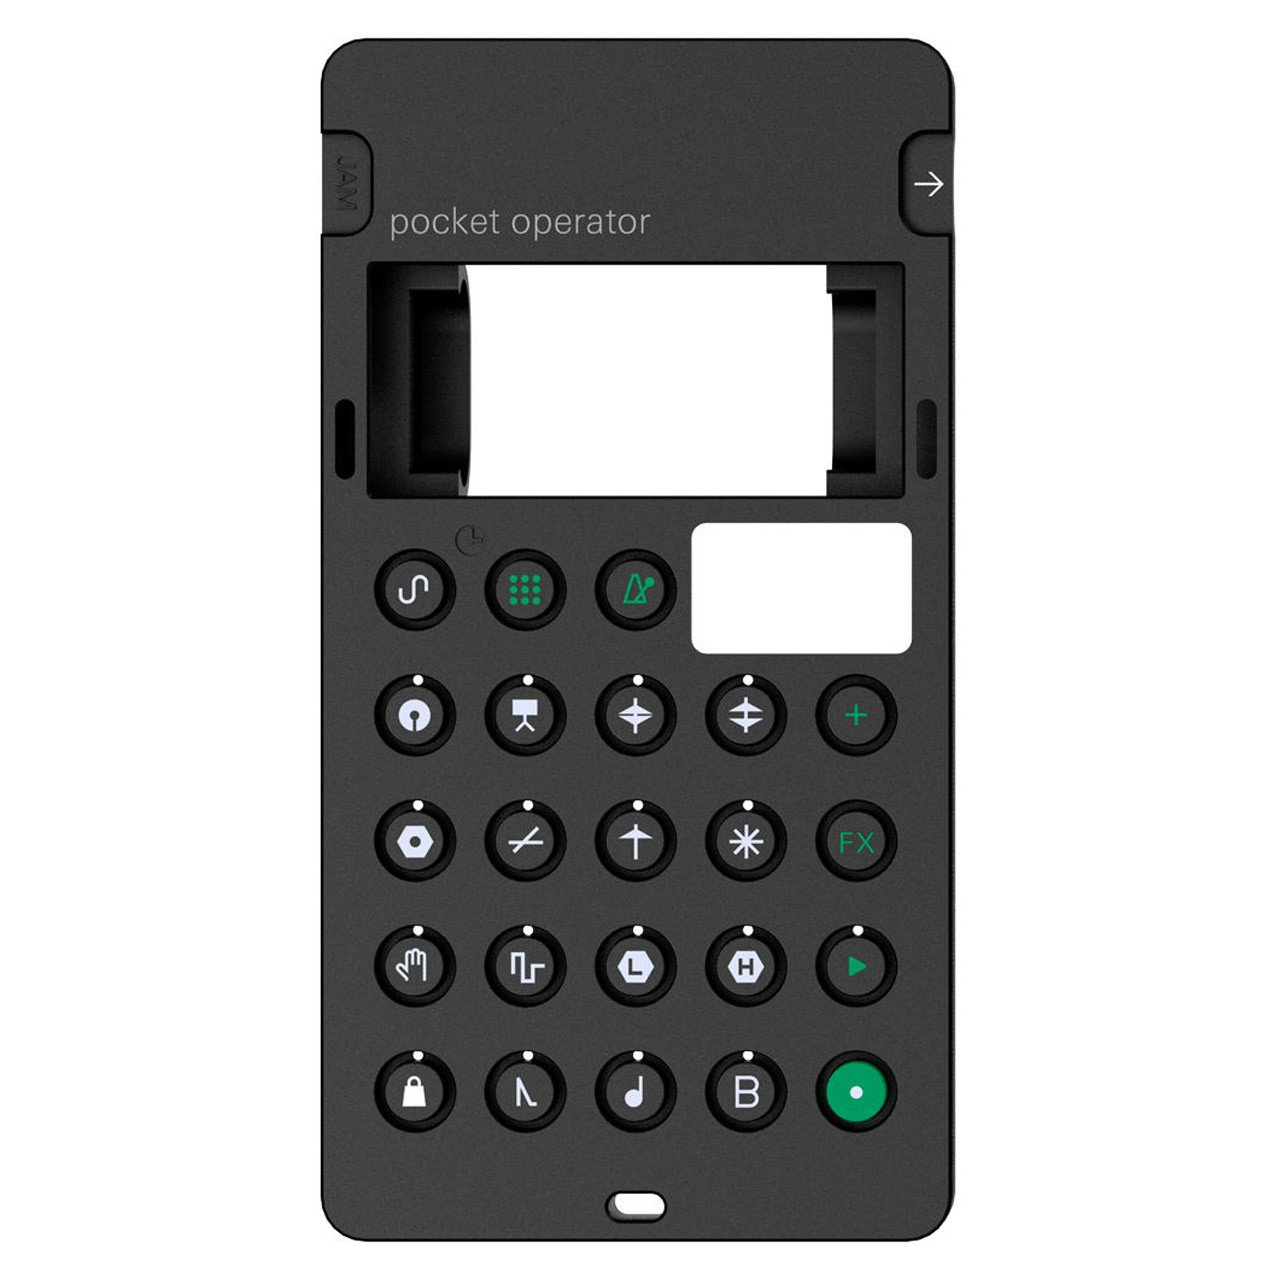 Keyboard Accessories - Teenage Engineering CA-12 Silicone Pro-case For PO-12 Pocket Operator